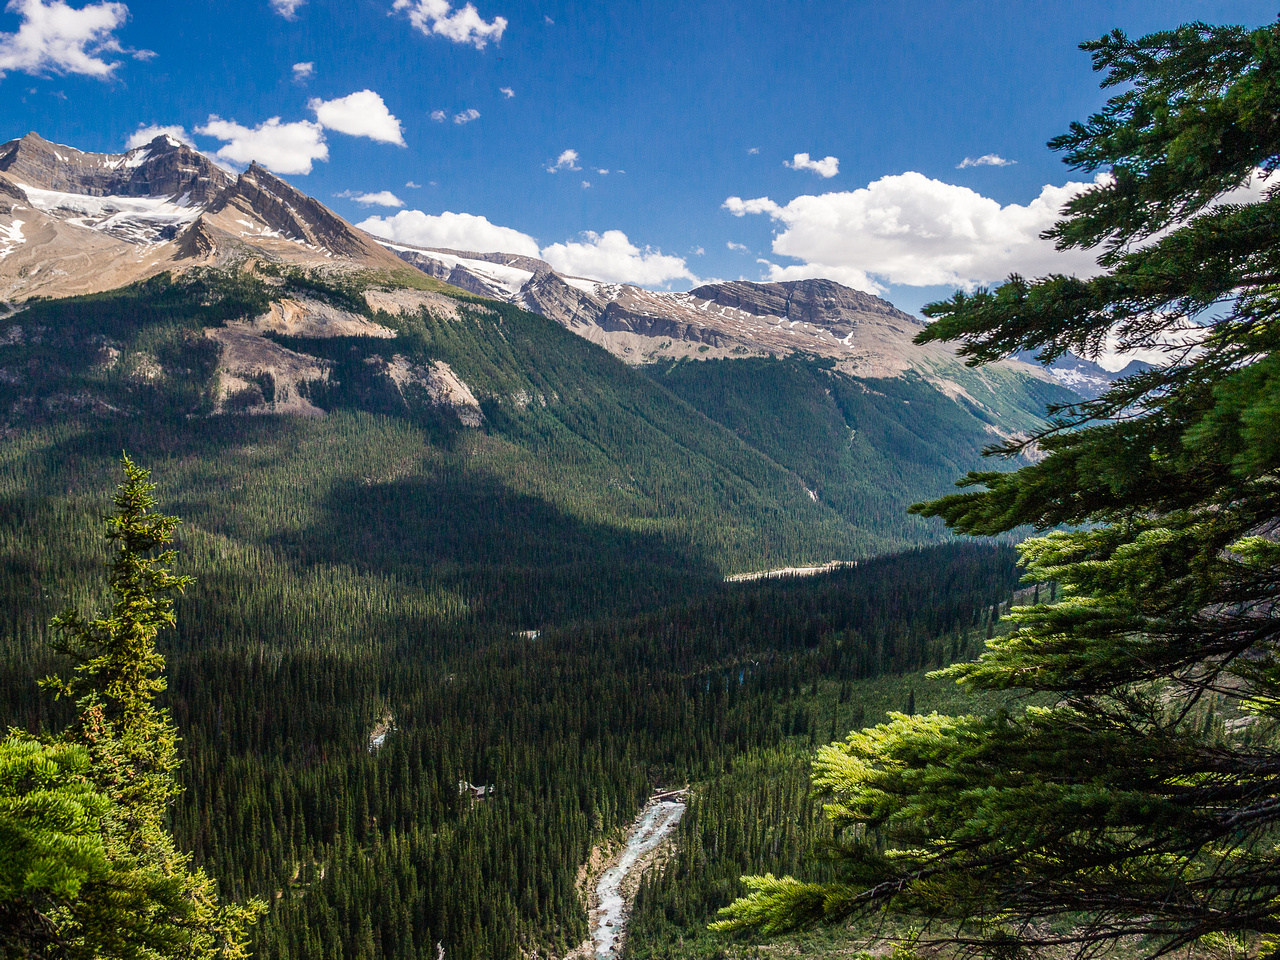 Looking down Twin Falls and the Yoho Valley.